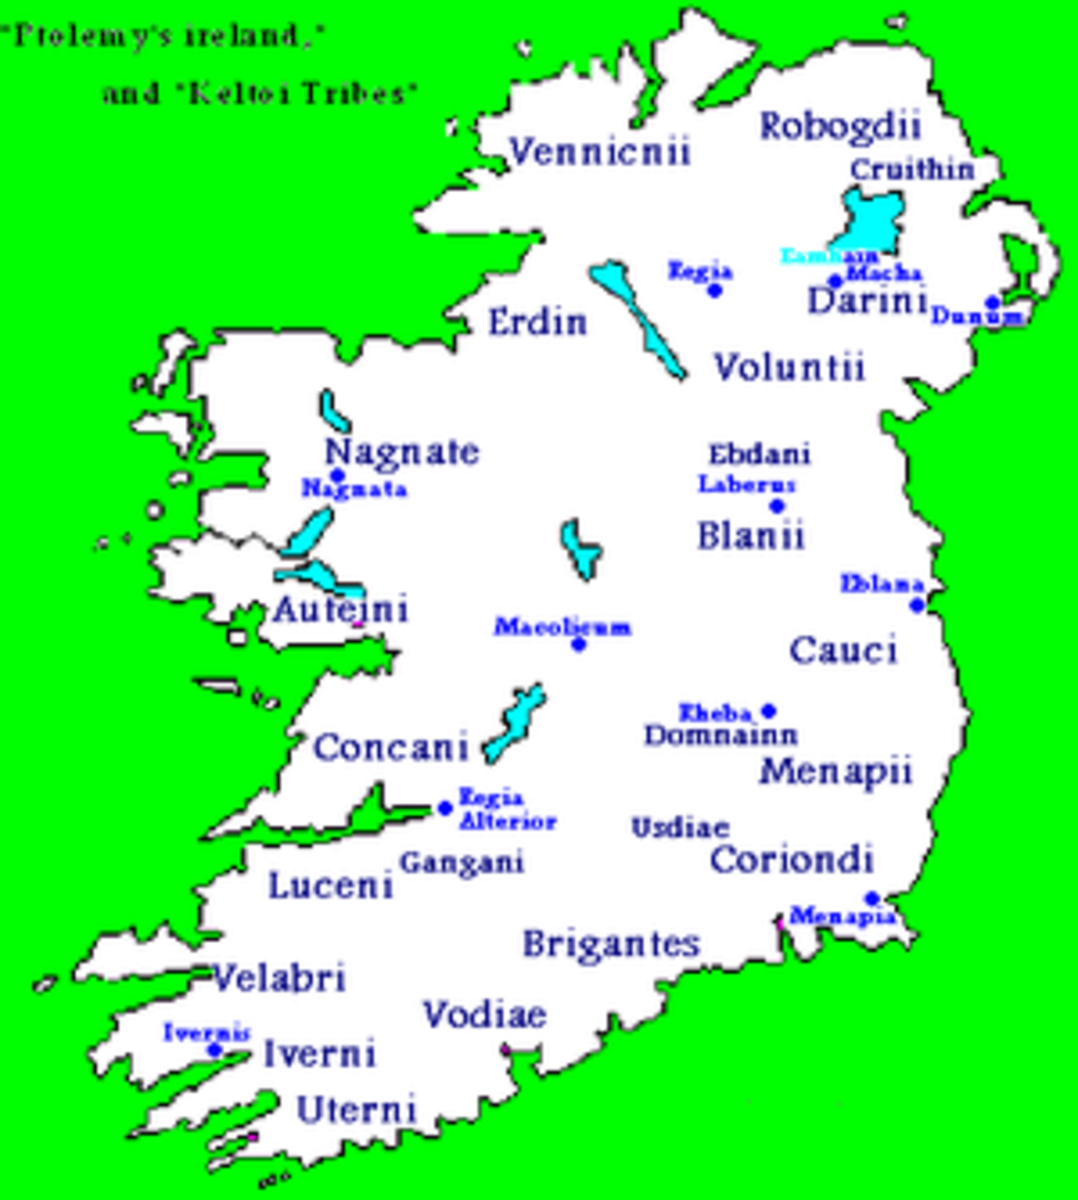 Celtic tribes taken from Ptolemy's Map of Ireland.